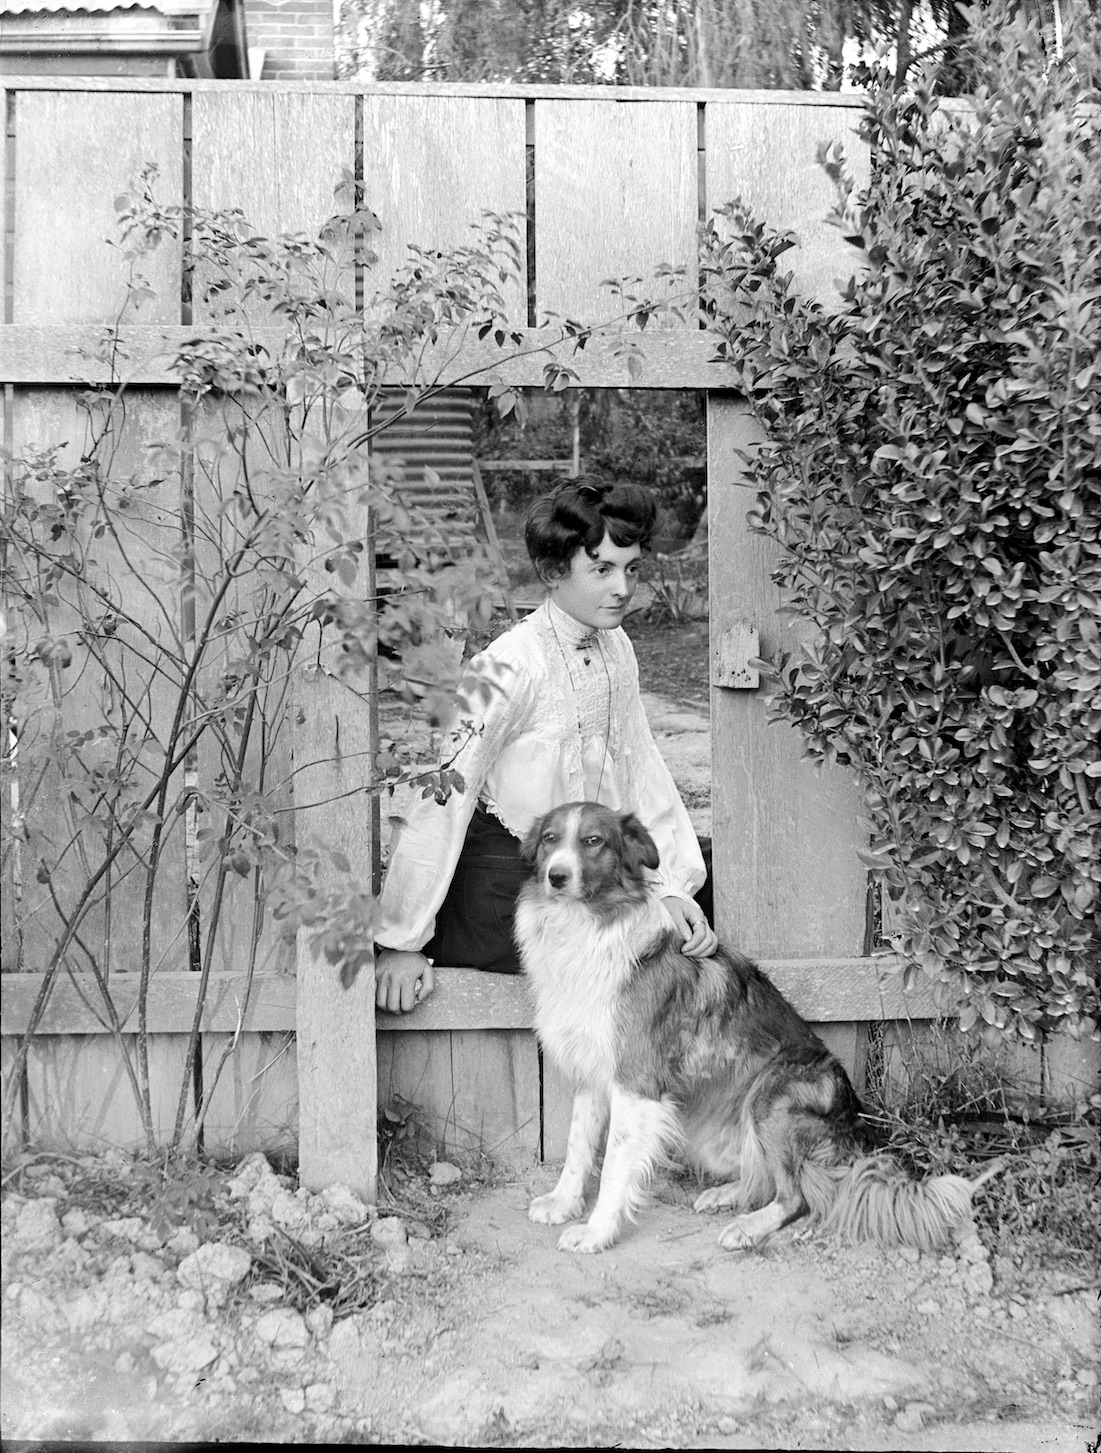 Woman posing with dog, likely taken in the North Island, New Zealand , circa 1907-1911. Lemuel Lyes Collection.